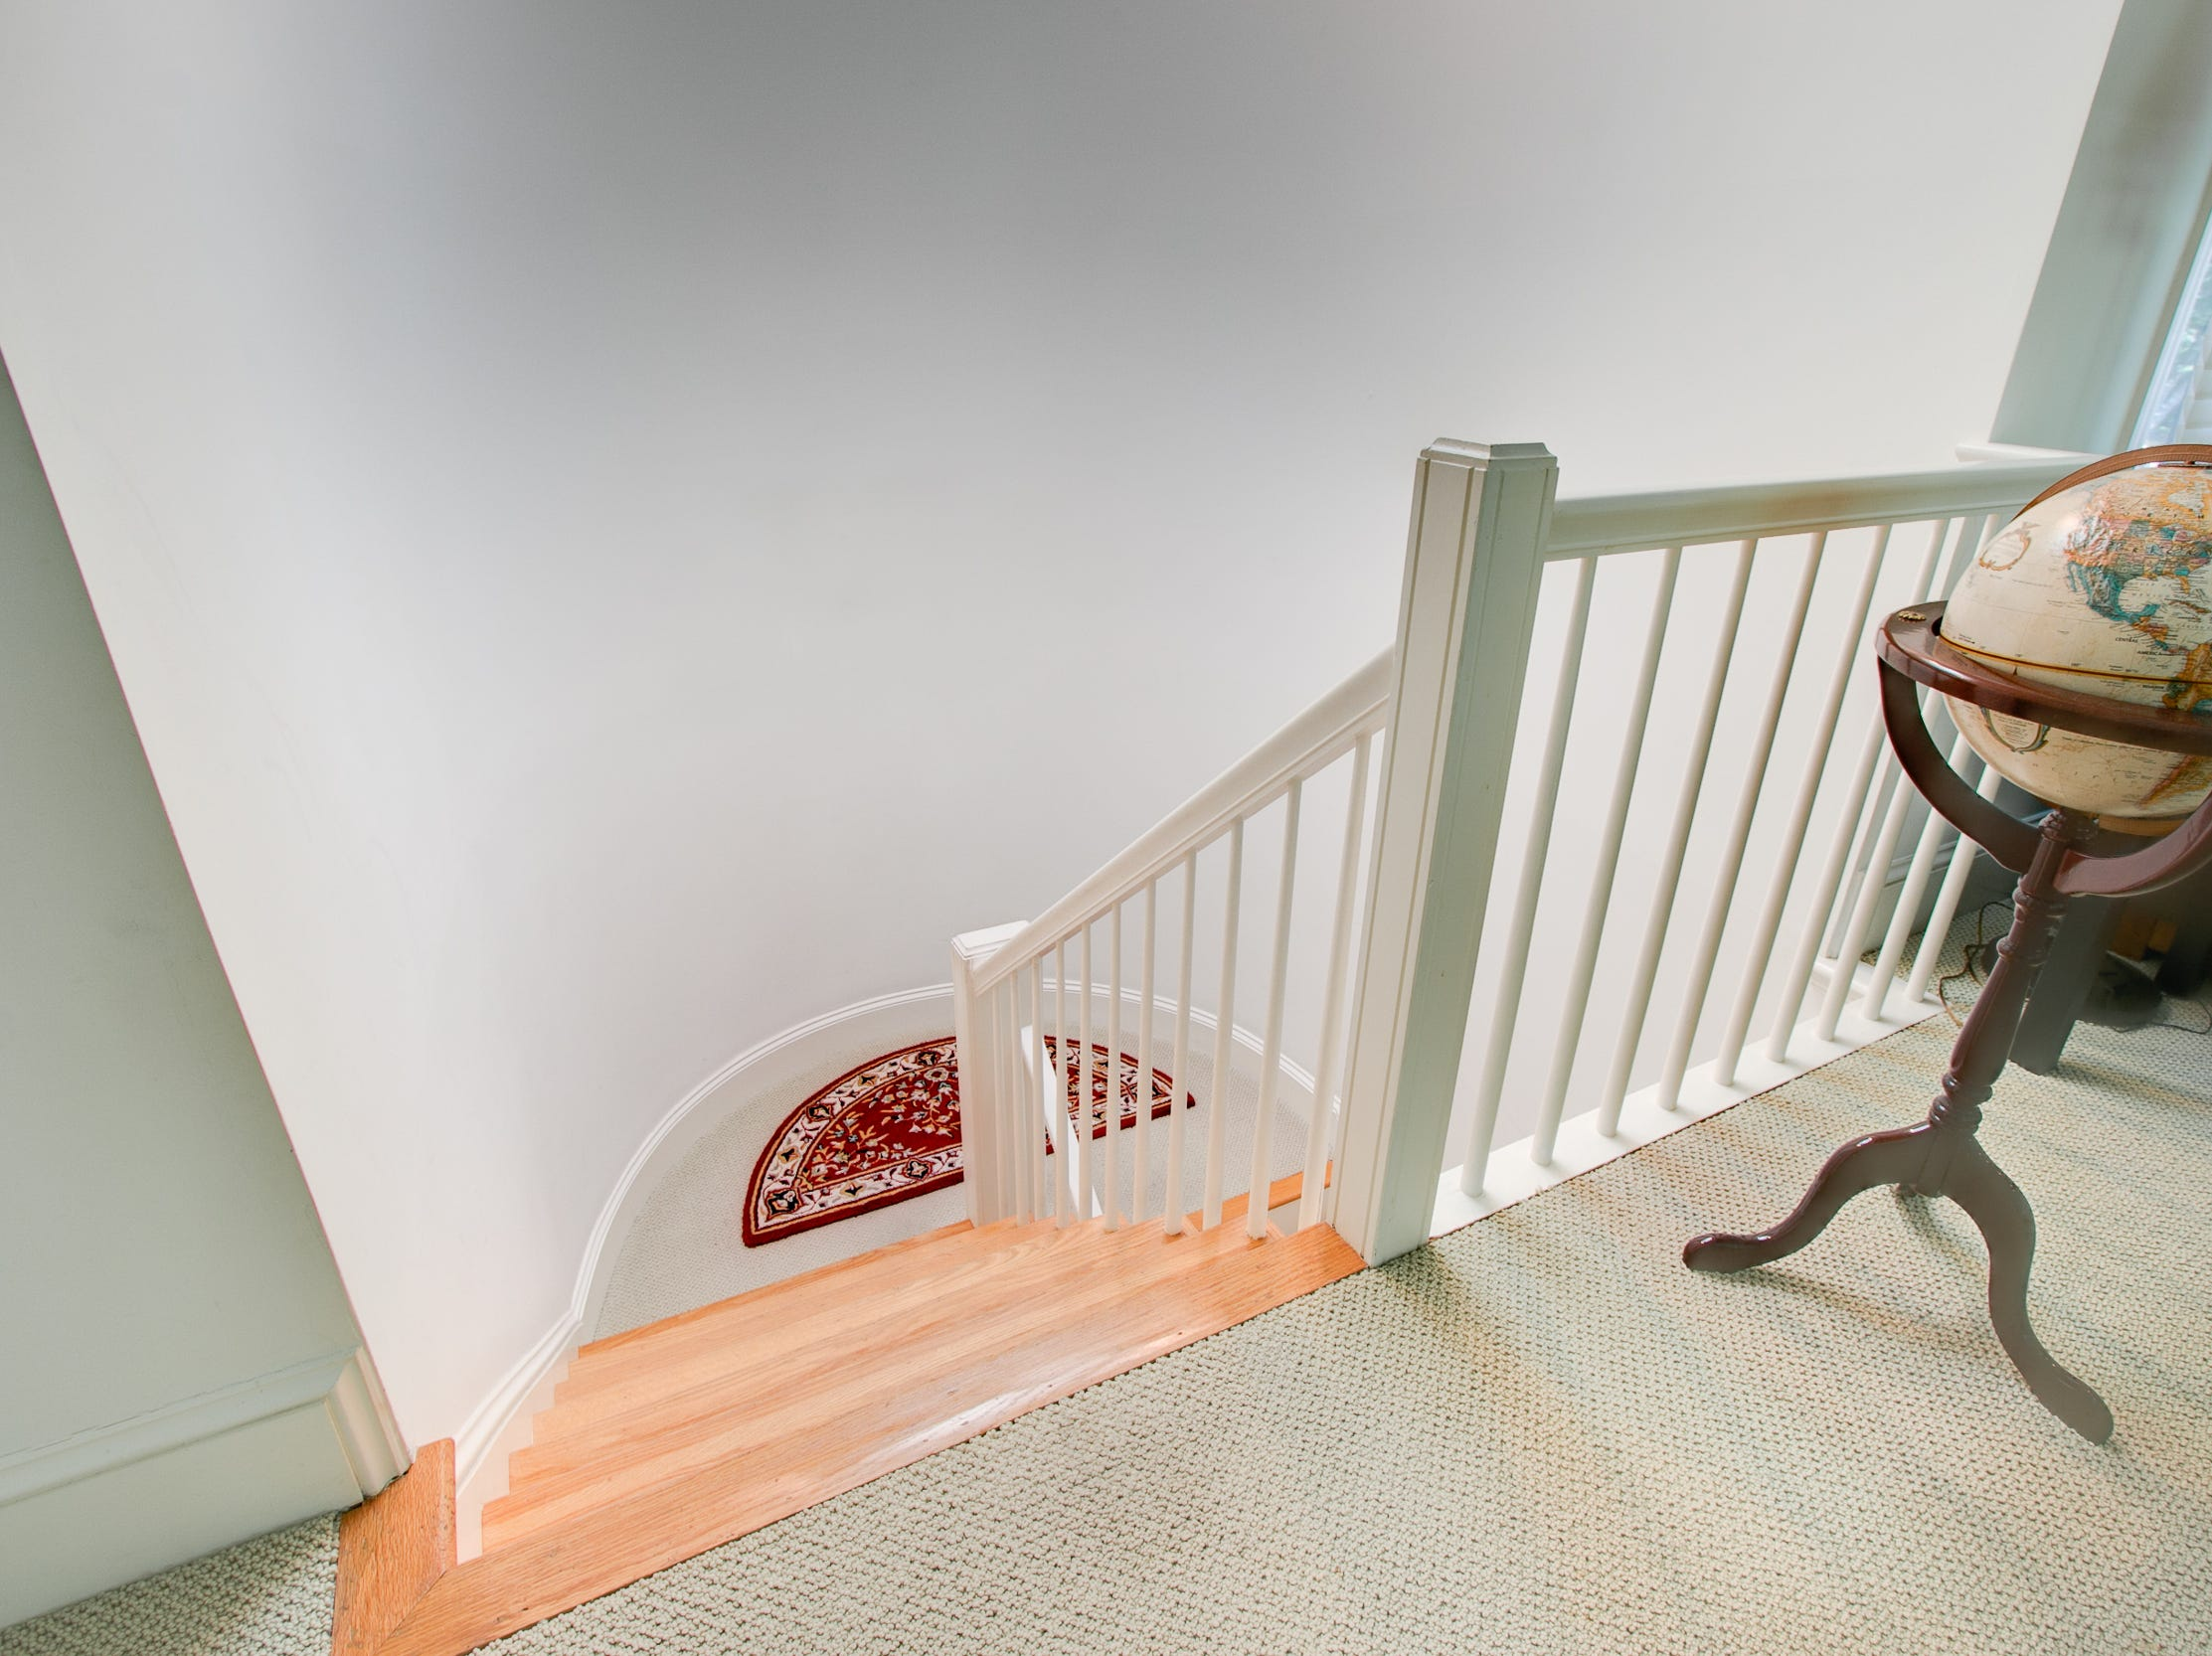 A simple staircase connects the three floors at 7 Brandywine Falls Road in Wilmington.